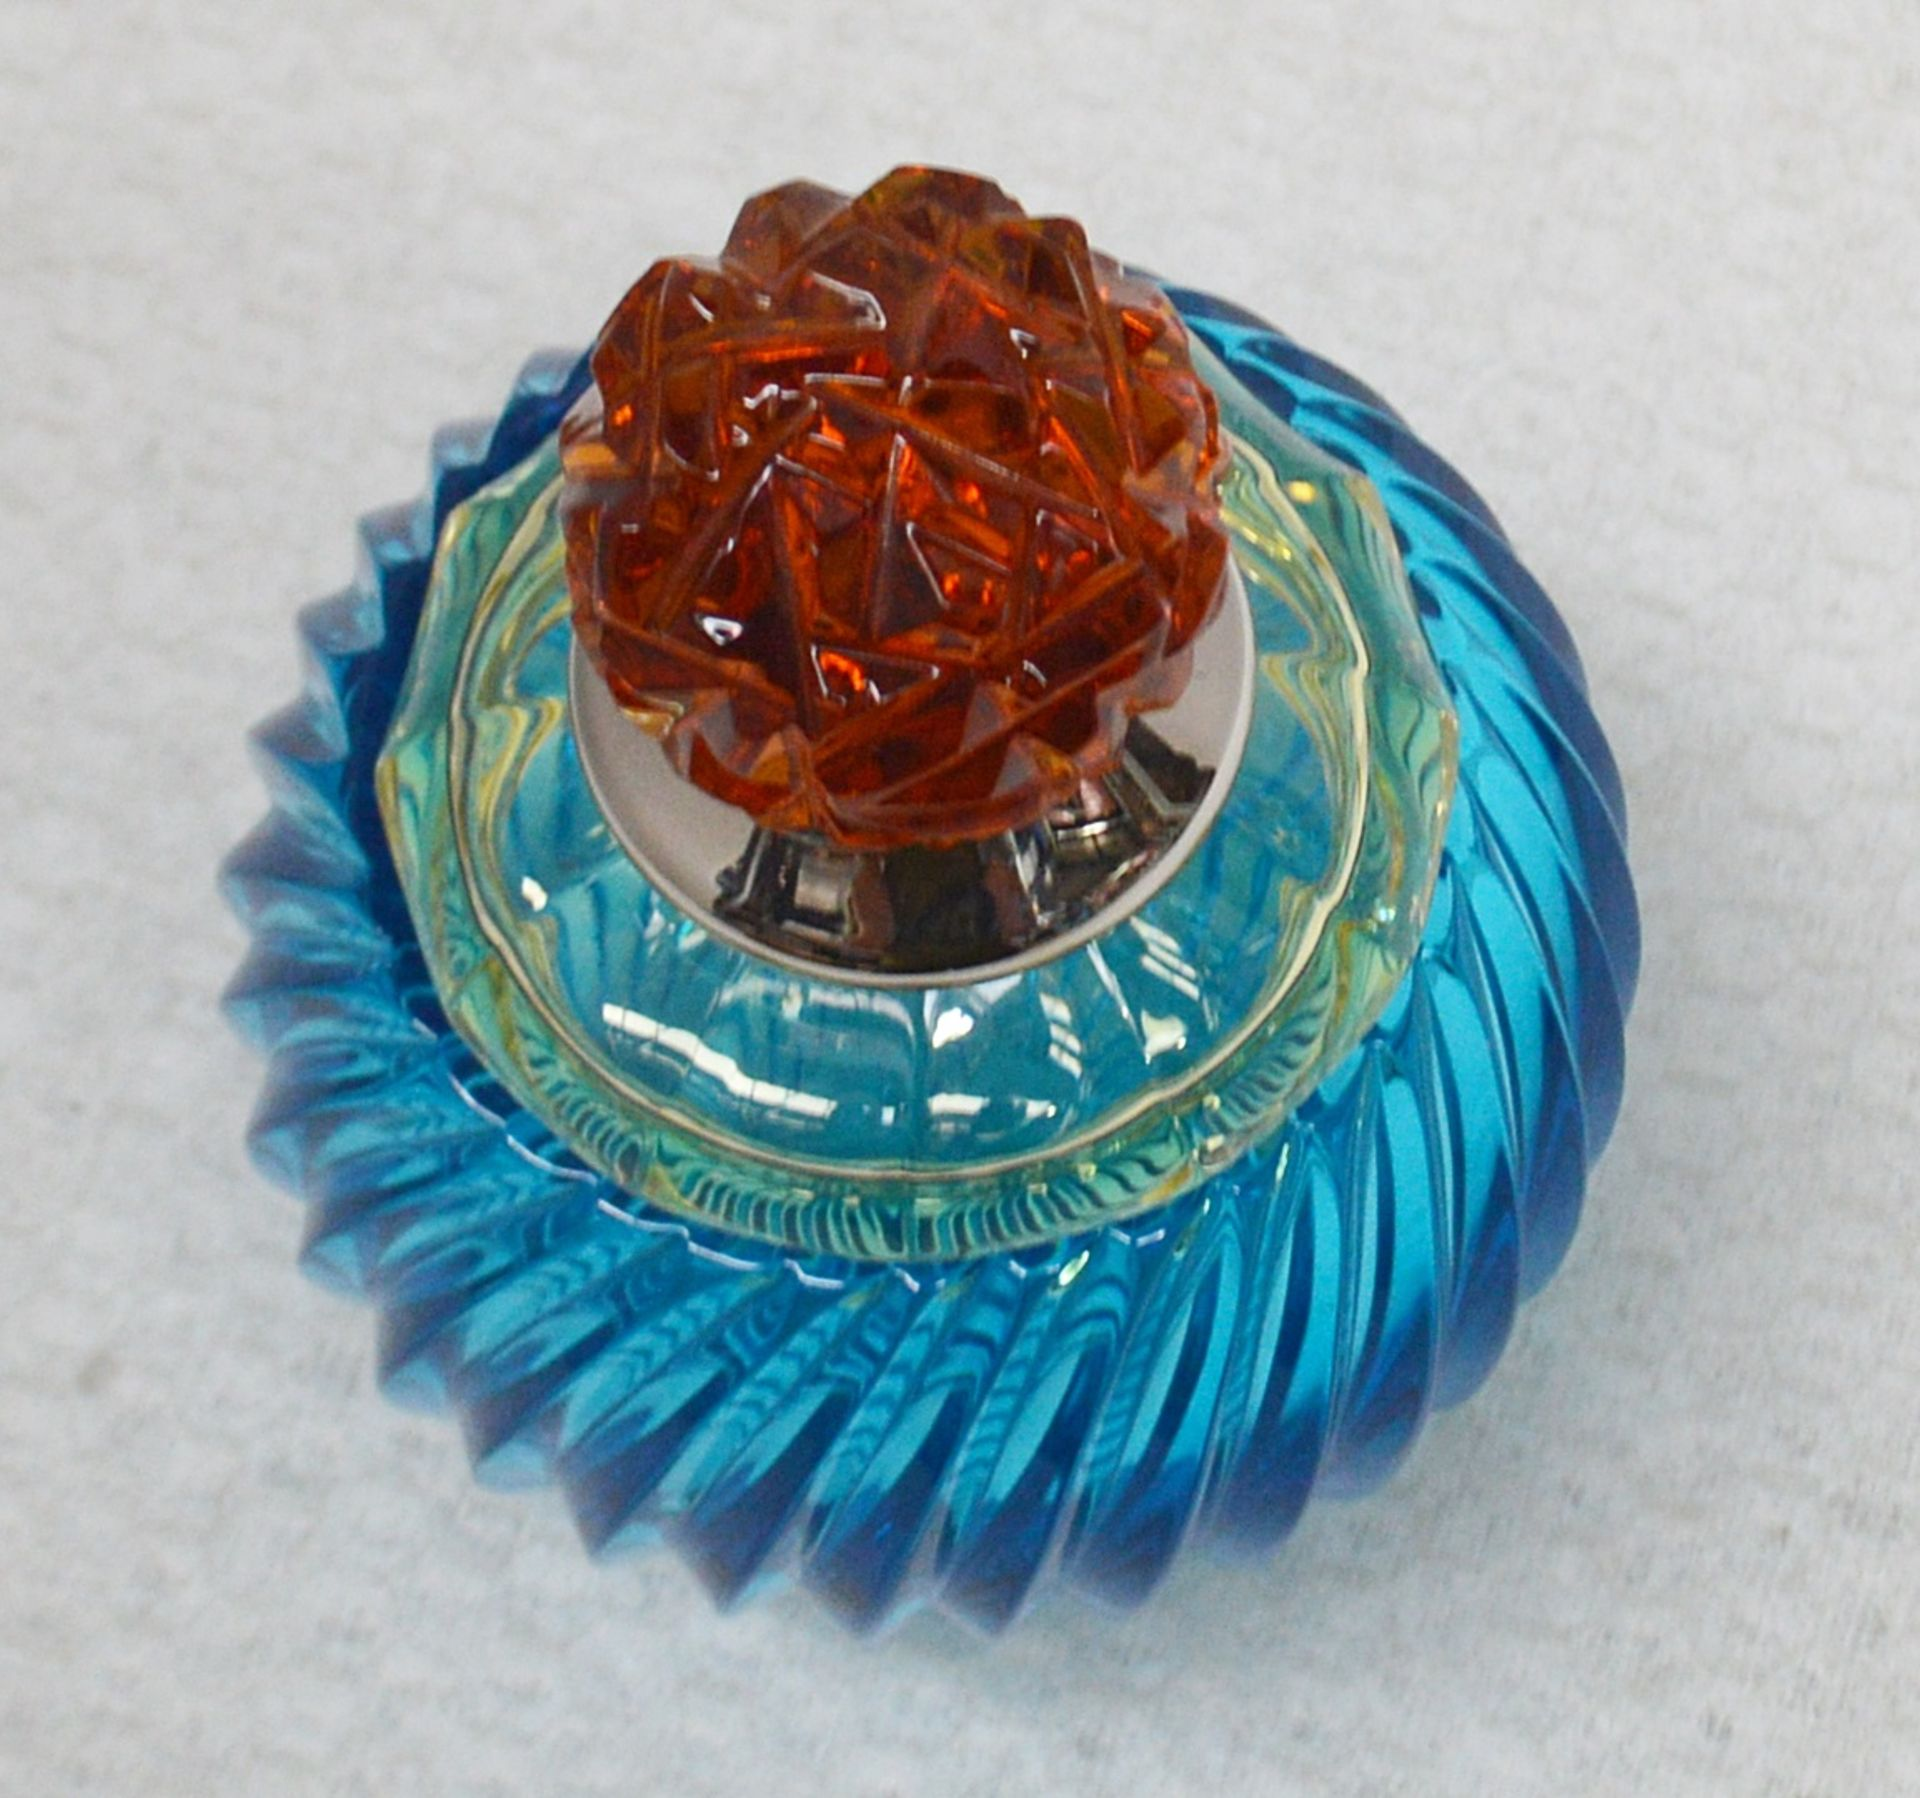 1 x BALDI 'Home Jewels' Italian Hand-crafted Artisan Small Coccinella Jar In Blue, Orange And Yellow - Image 2 of 3